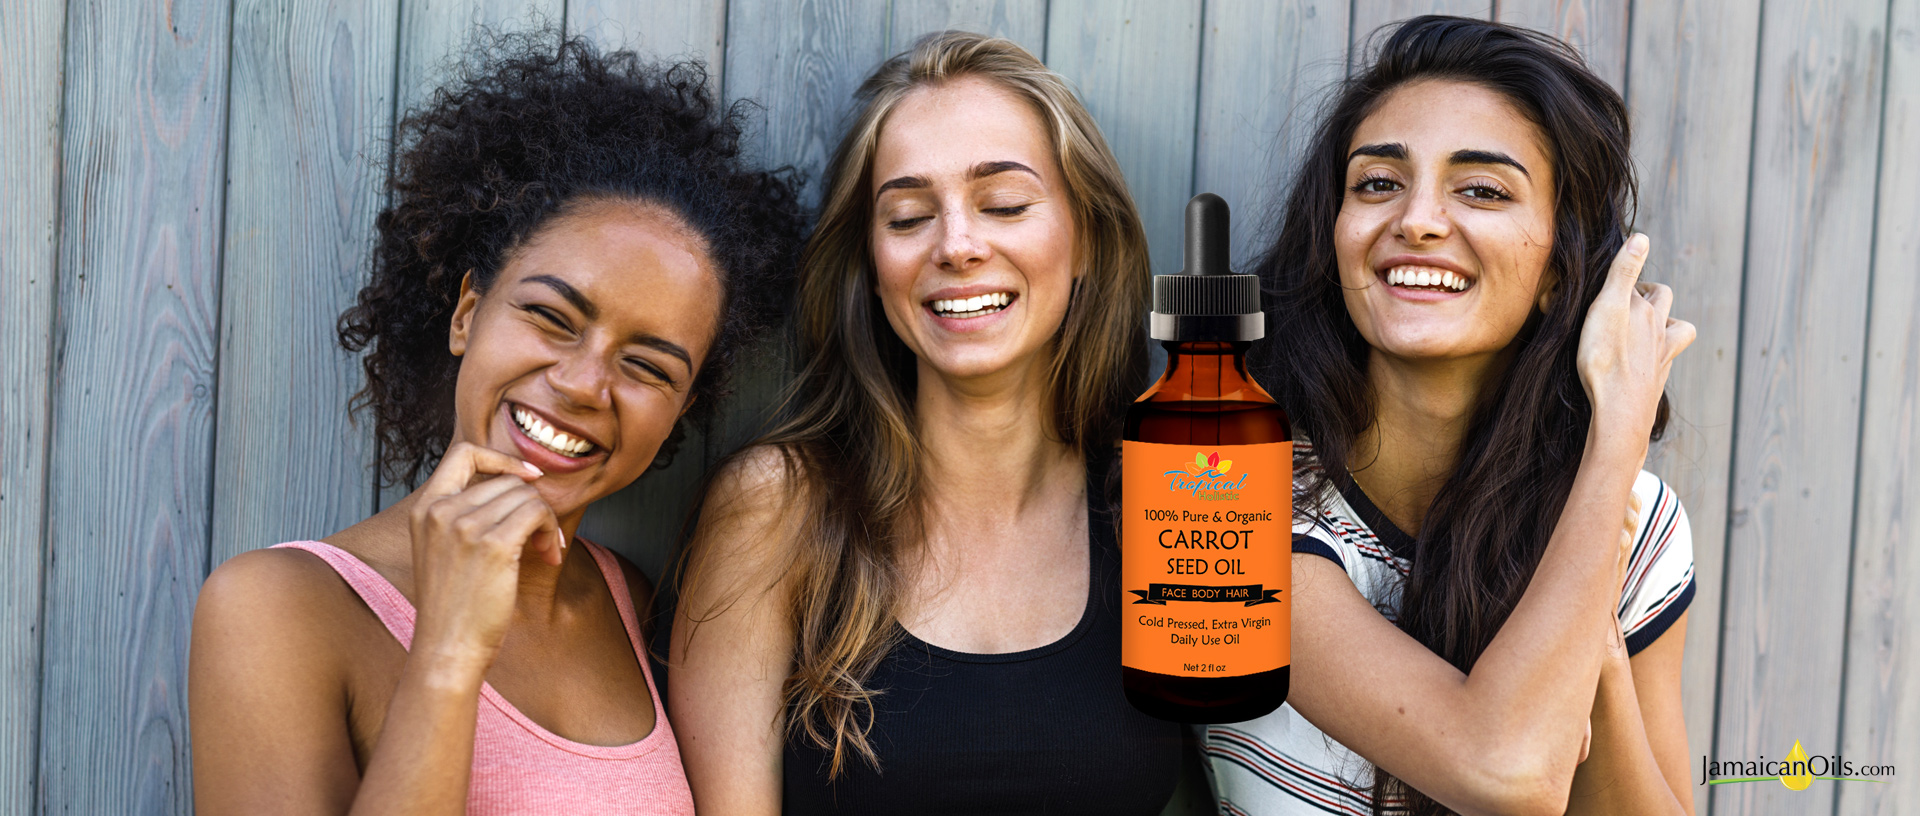 CARROT SEED OIL for all hair types